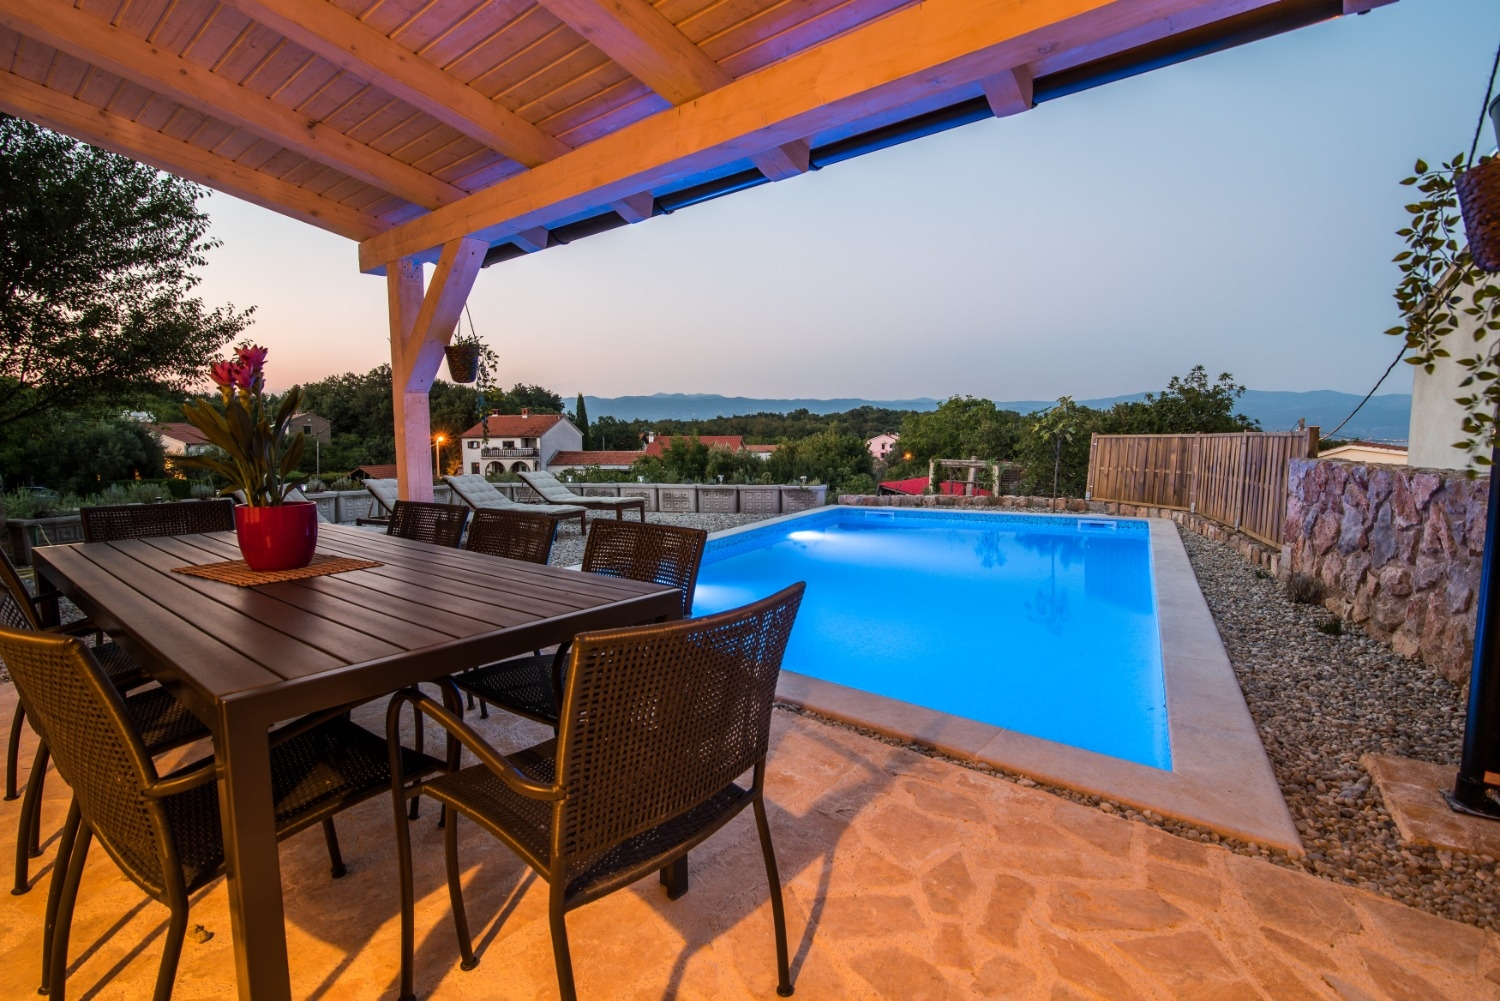 Holiday Homes, Vrbnik, Island of Krk - Holiday houses, villas  Peace - rustic with pool: